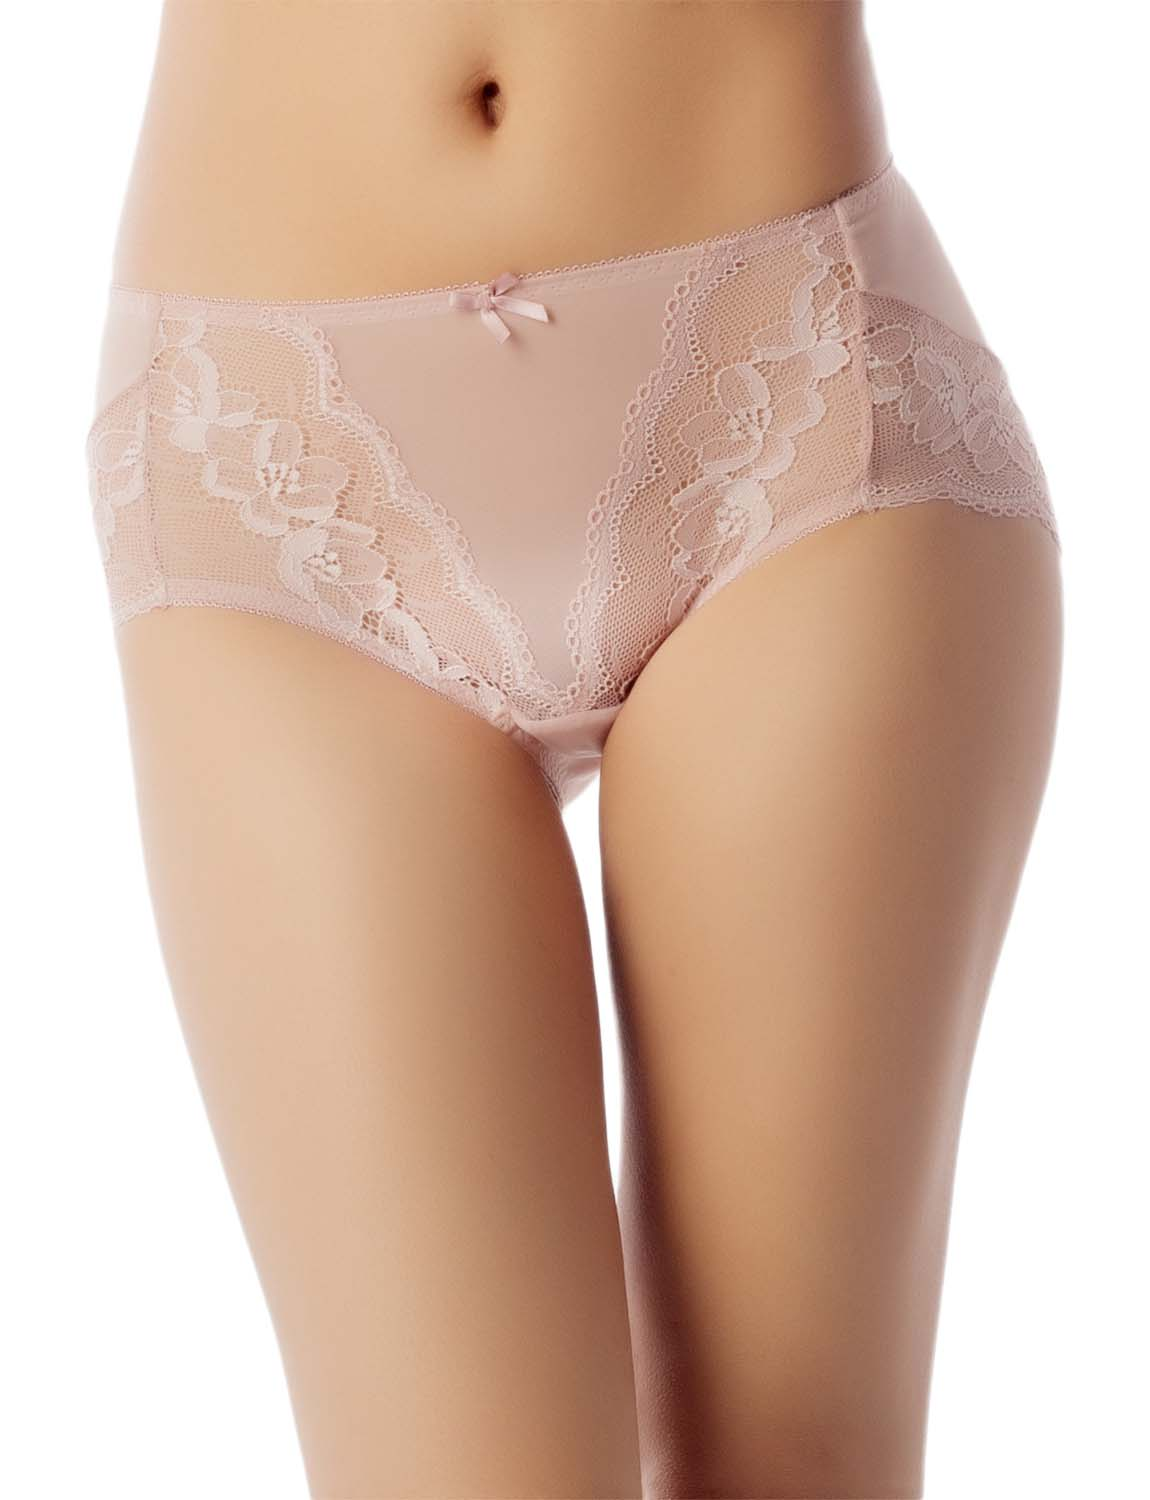 Women's Underwear Sheer Lace See-Through Bowknot Mid Waist Hipster Panty, Size: 2XL, Light Pink